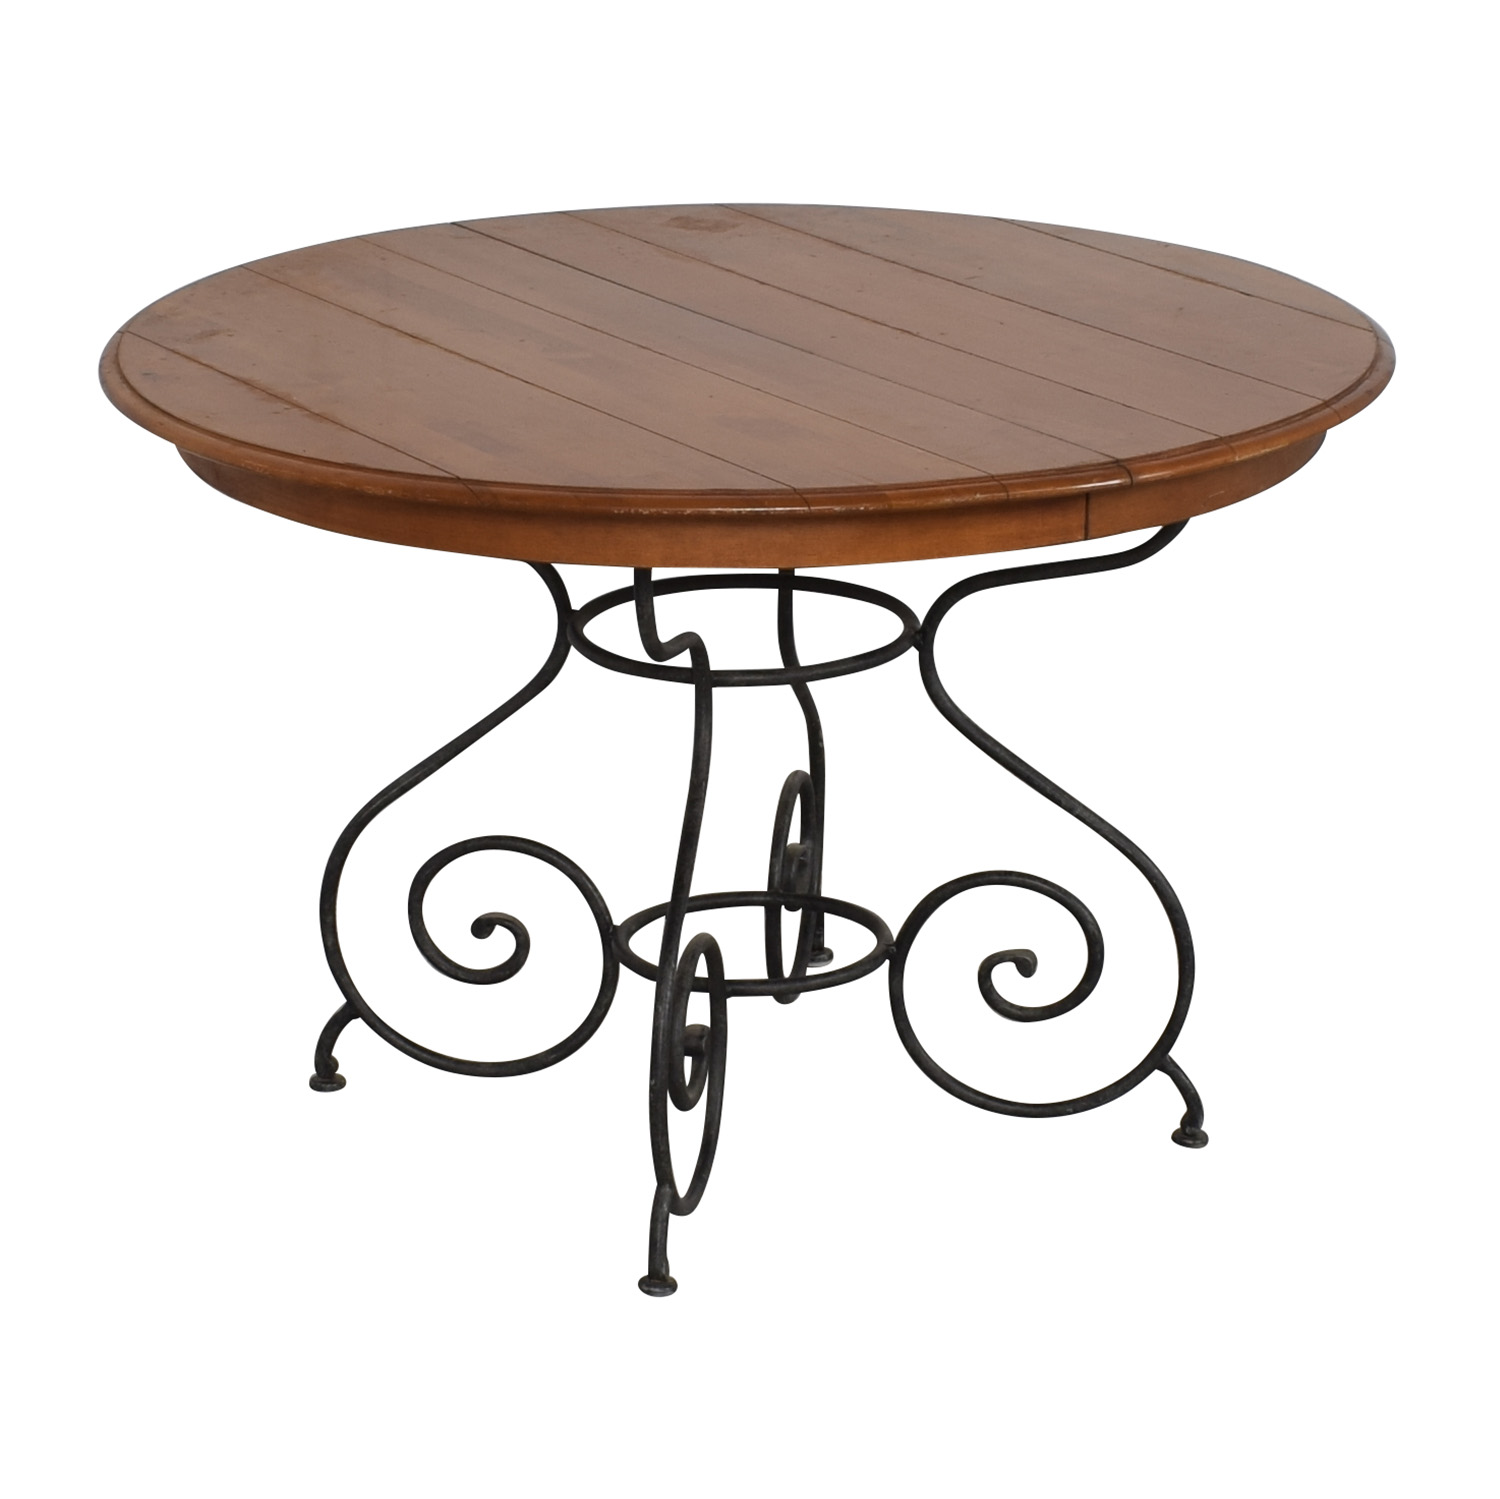 Ethan Allen Ethan Allen Legacy Russet Dining Table pa